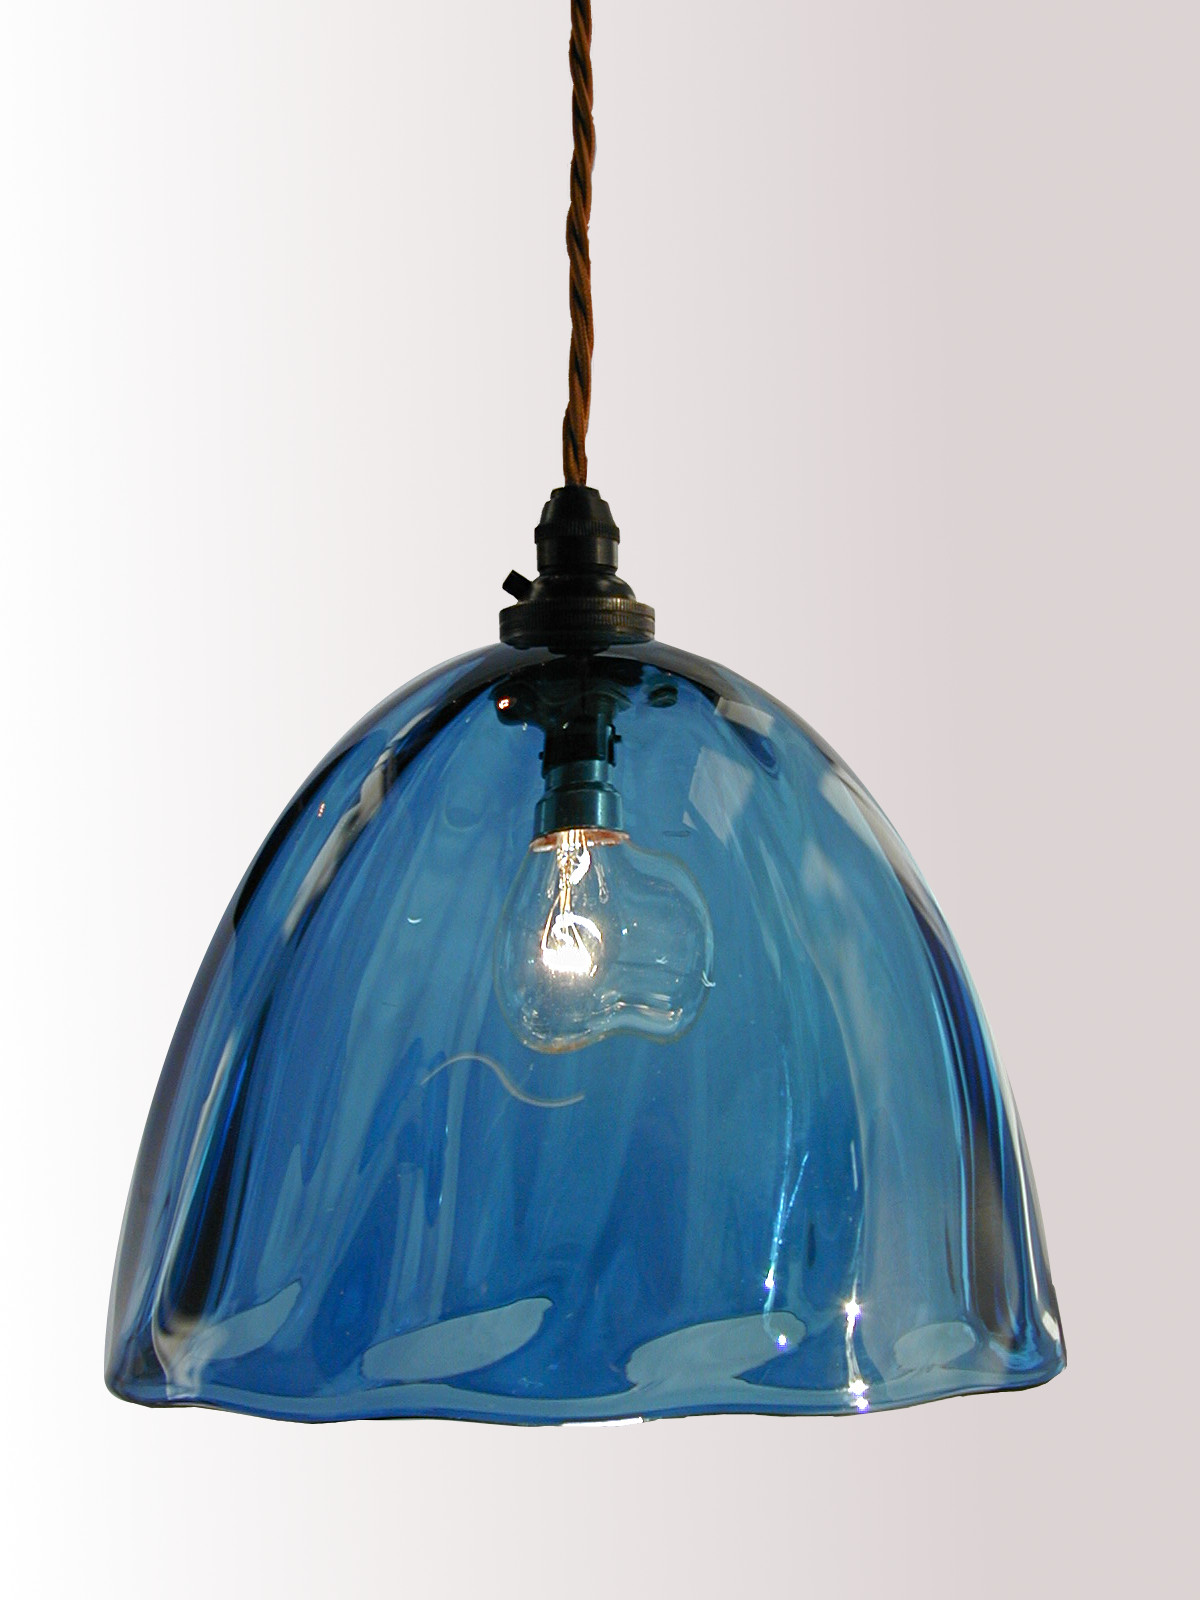 Steel Blue hand blown glass pendant lampshade